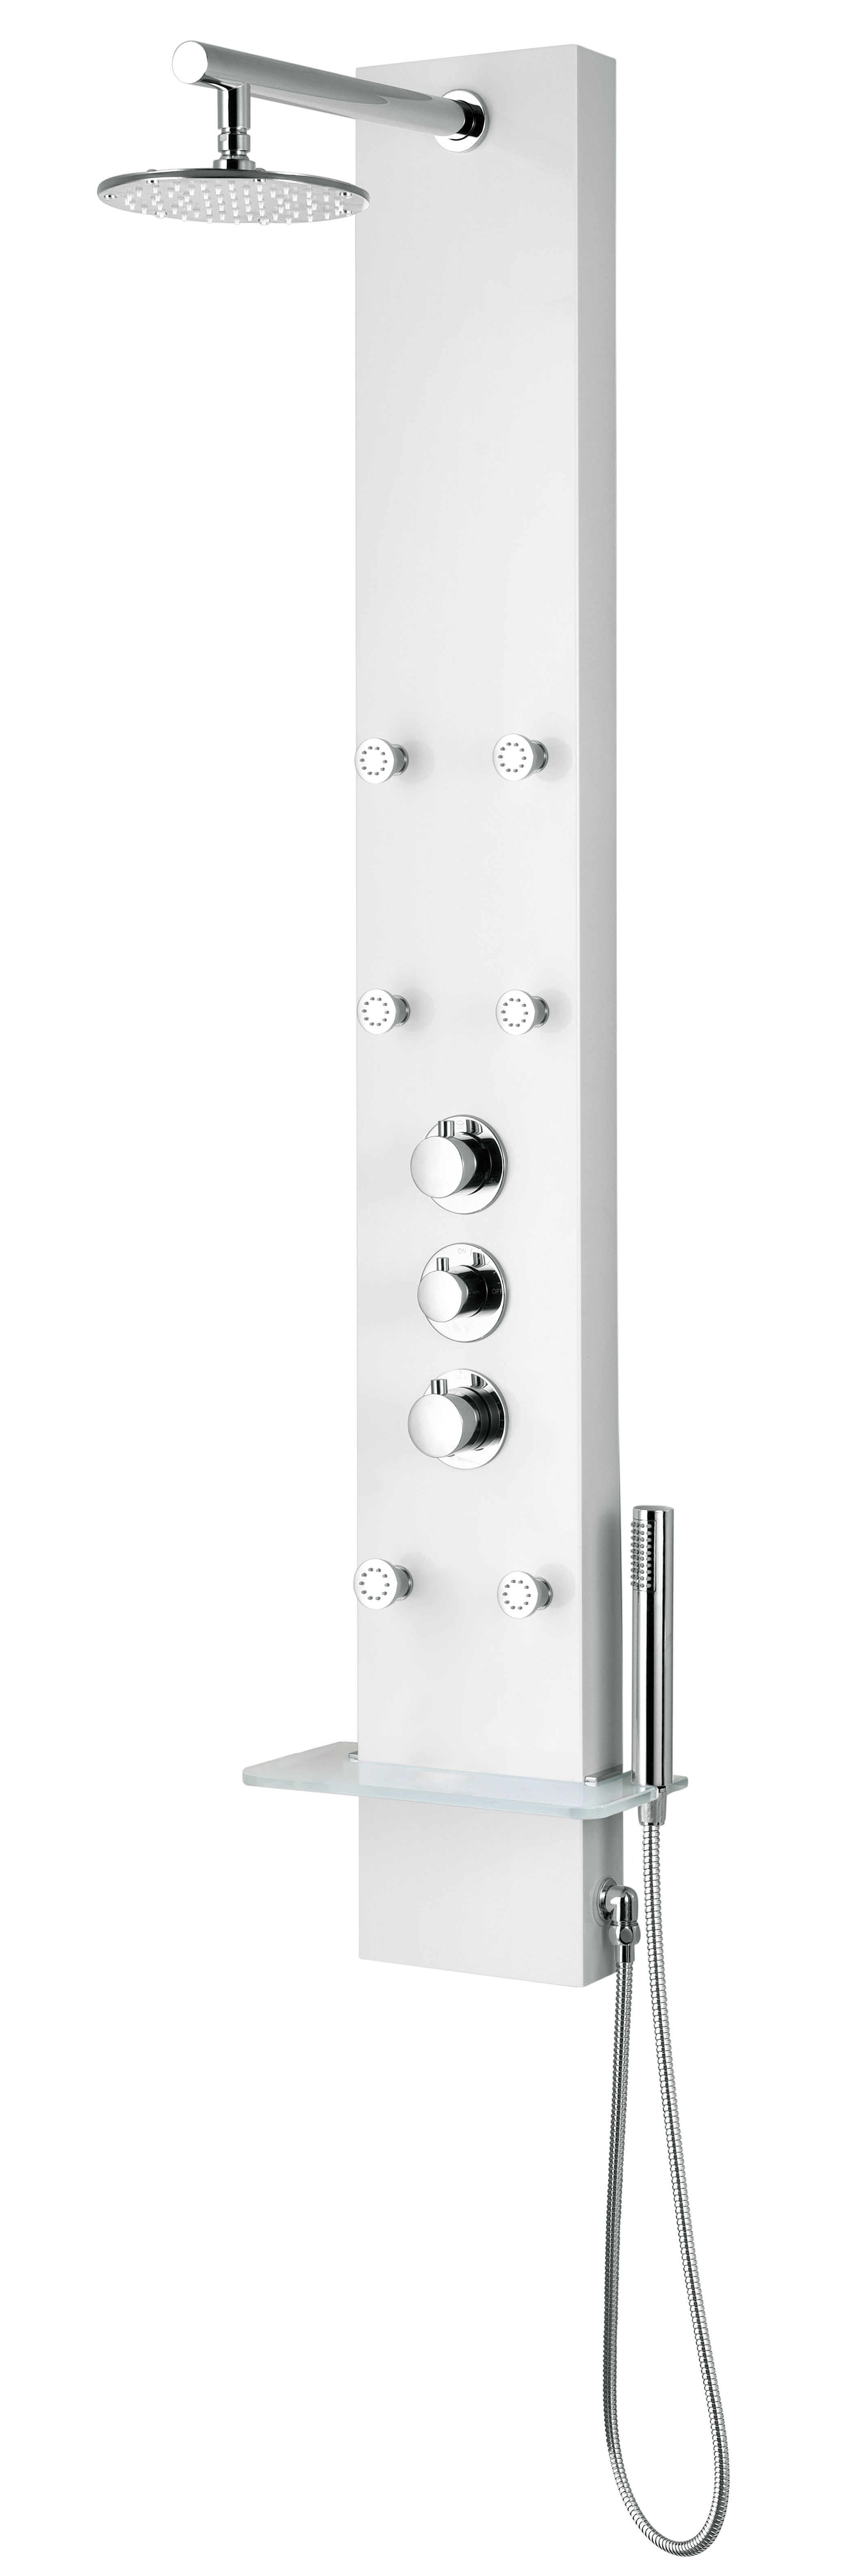 ANZZI SP-AZ028 Donna Shower Panel In White With Rain Shower and Spray Wand